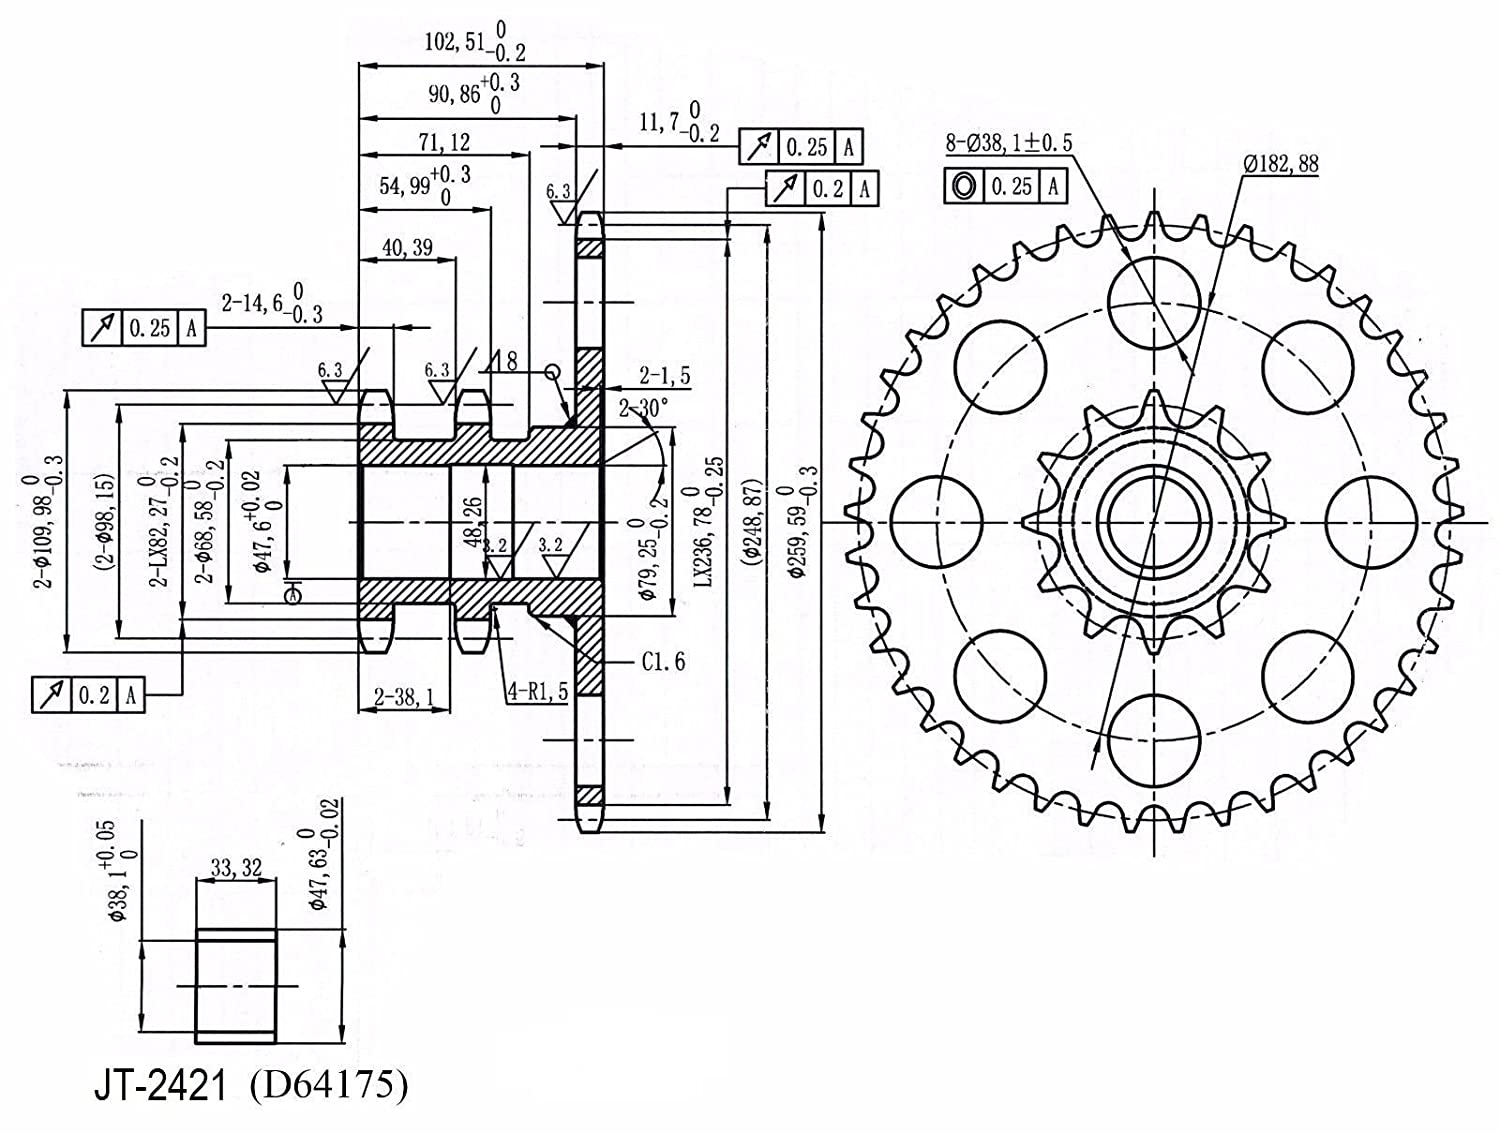 D76529 Chain Drive Sprocket for Case-IH Skid Steer Loader 1845C:  Amazon.com: Industrial & Scientific